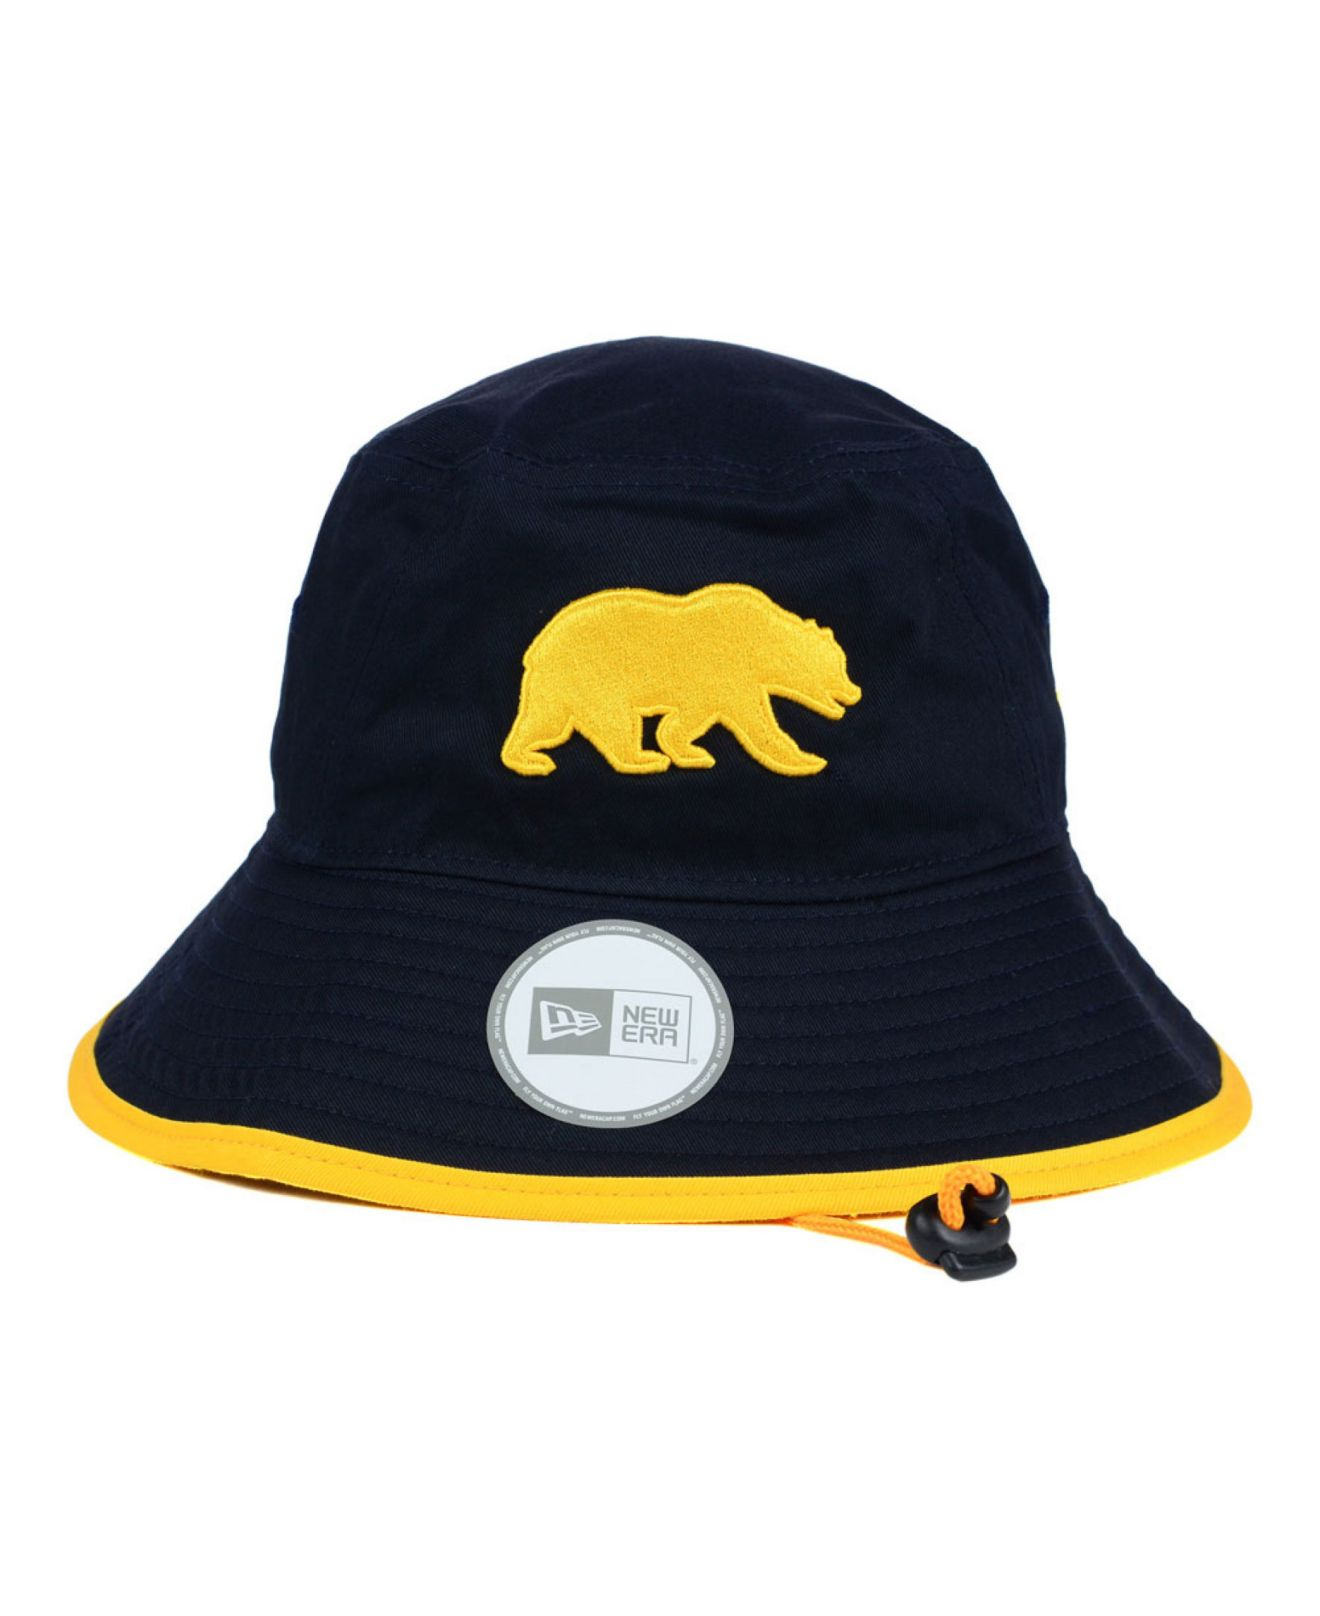 6beece899e6 new york giants new era 59fifty fitted hat yankees color navy gray under  brim  lyst ktz california golden bears tip bucket hat in blue for men